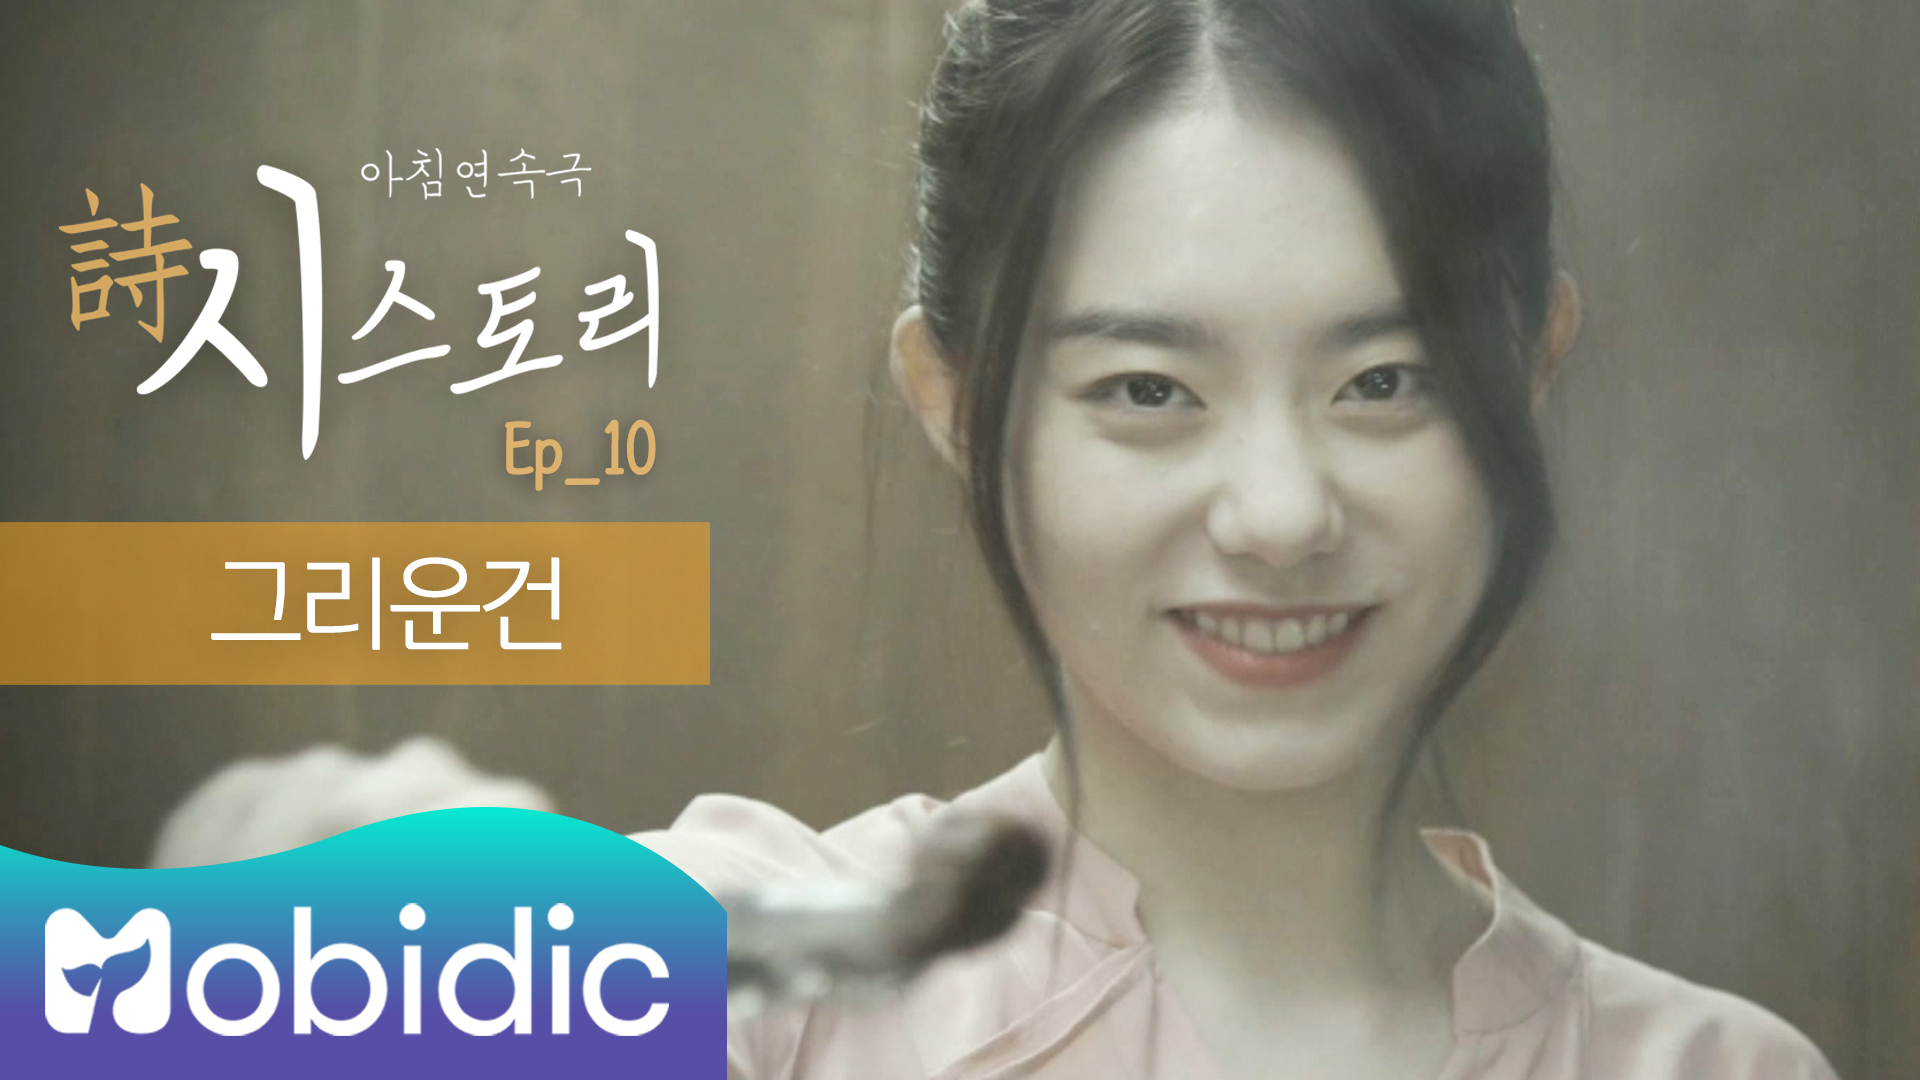 <시(詩)스토리> 10화 그리운건 (Poetic Story Ep10: What I miss)